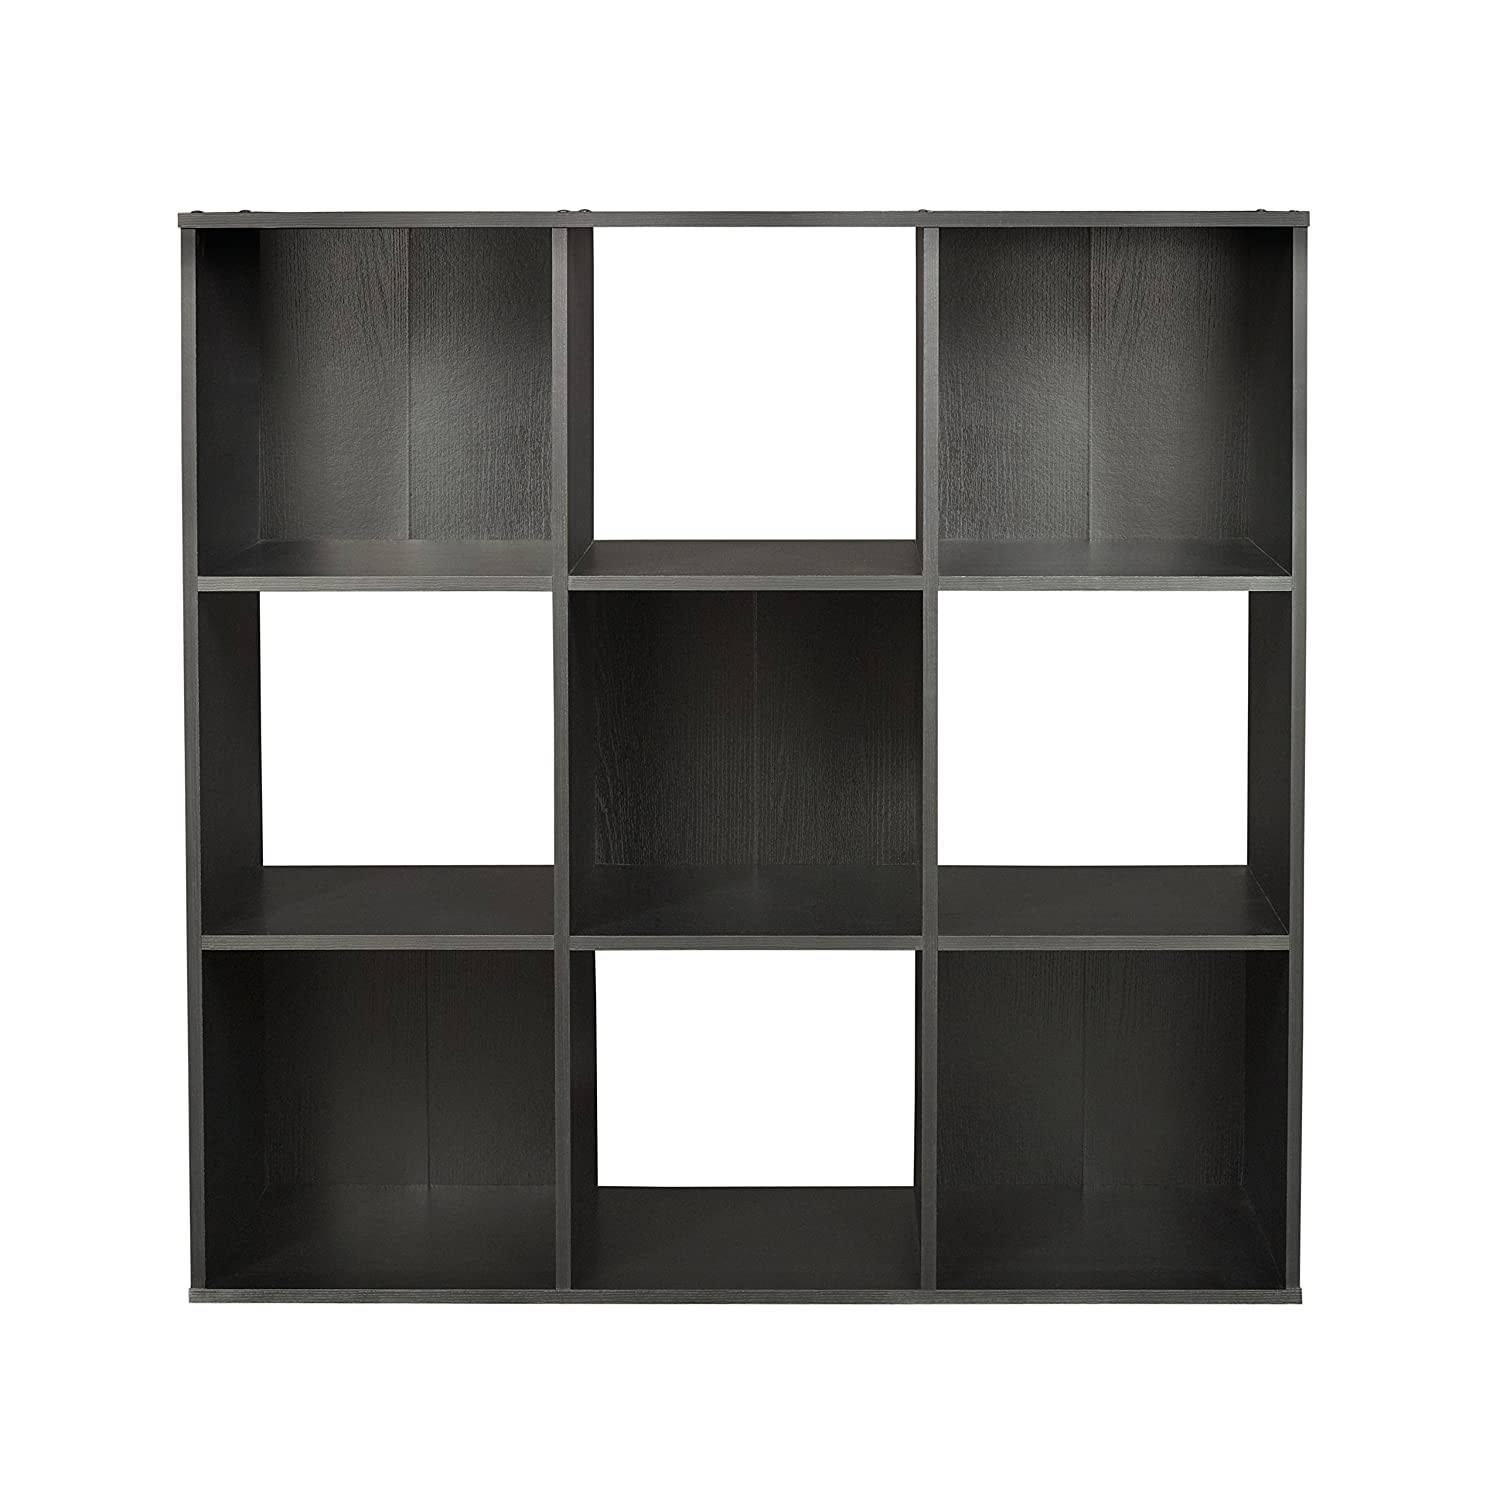 Amazon.com: ClosetMaid (78016) Cubeicals Organizer, 9 Cube   Black: Home U0026  Kitchen